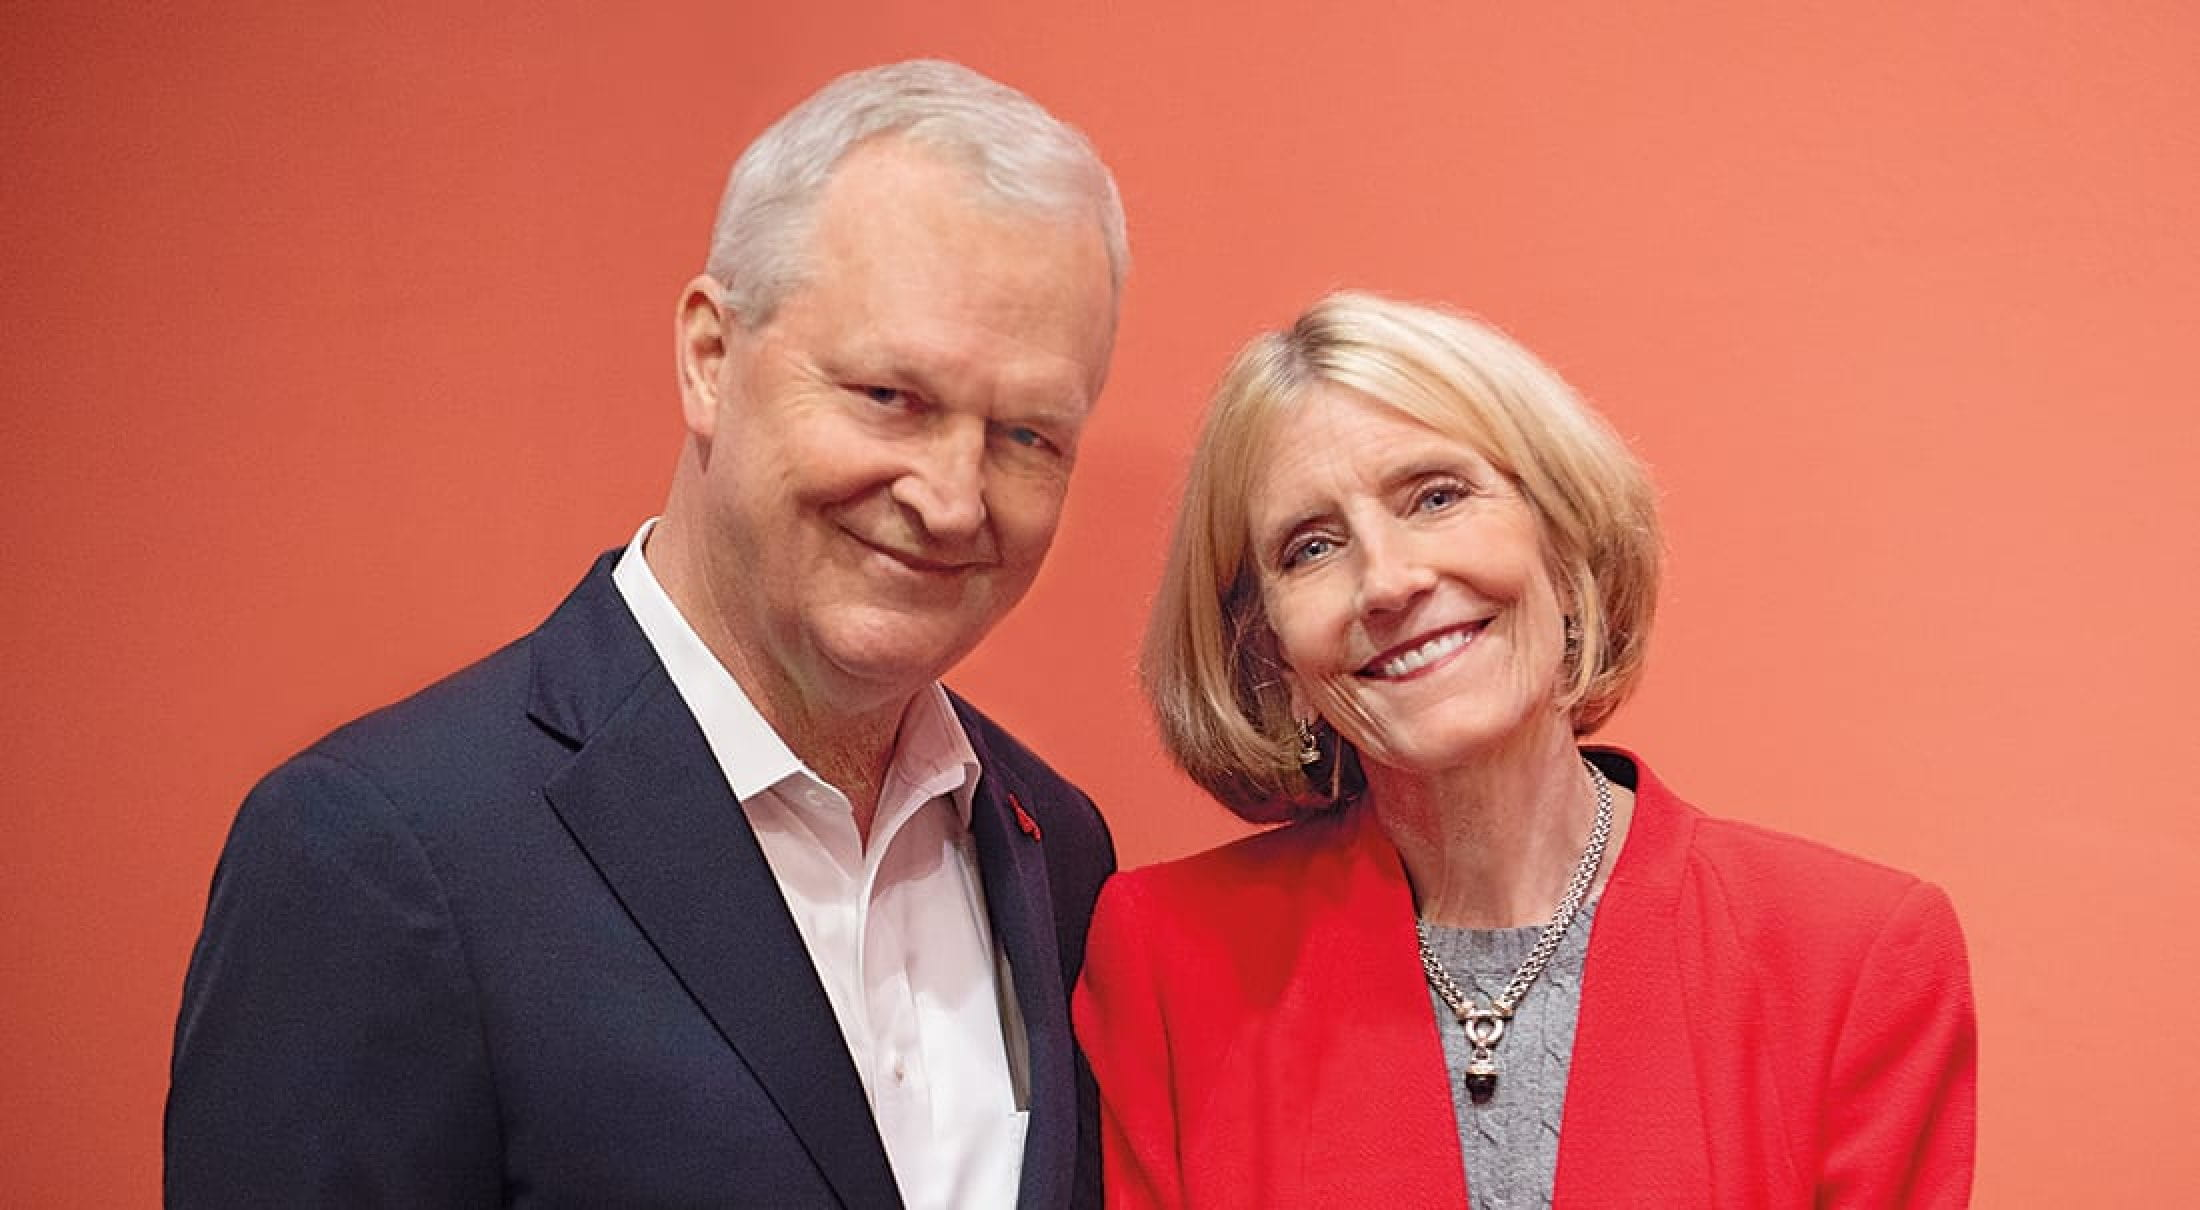 Chris and Connie O'Neill, co-chairs of the SMU Parent Leadershp Council